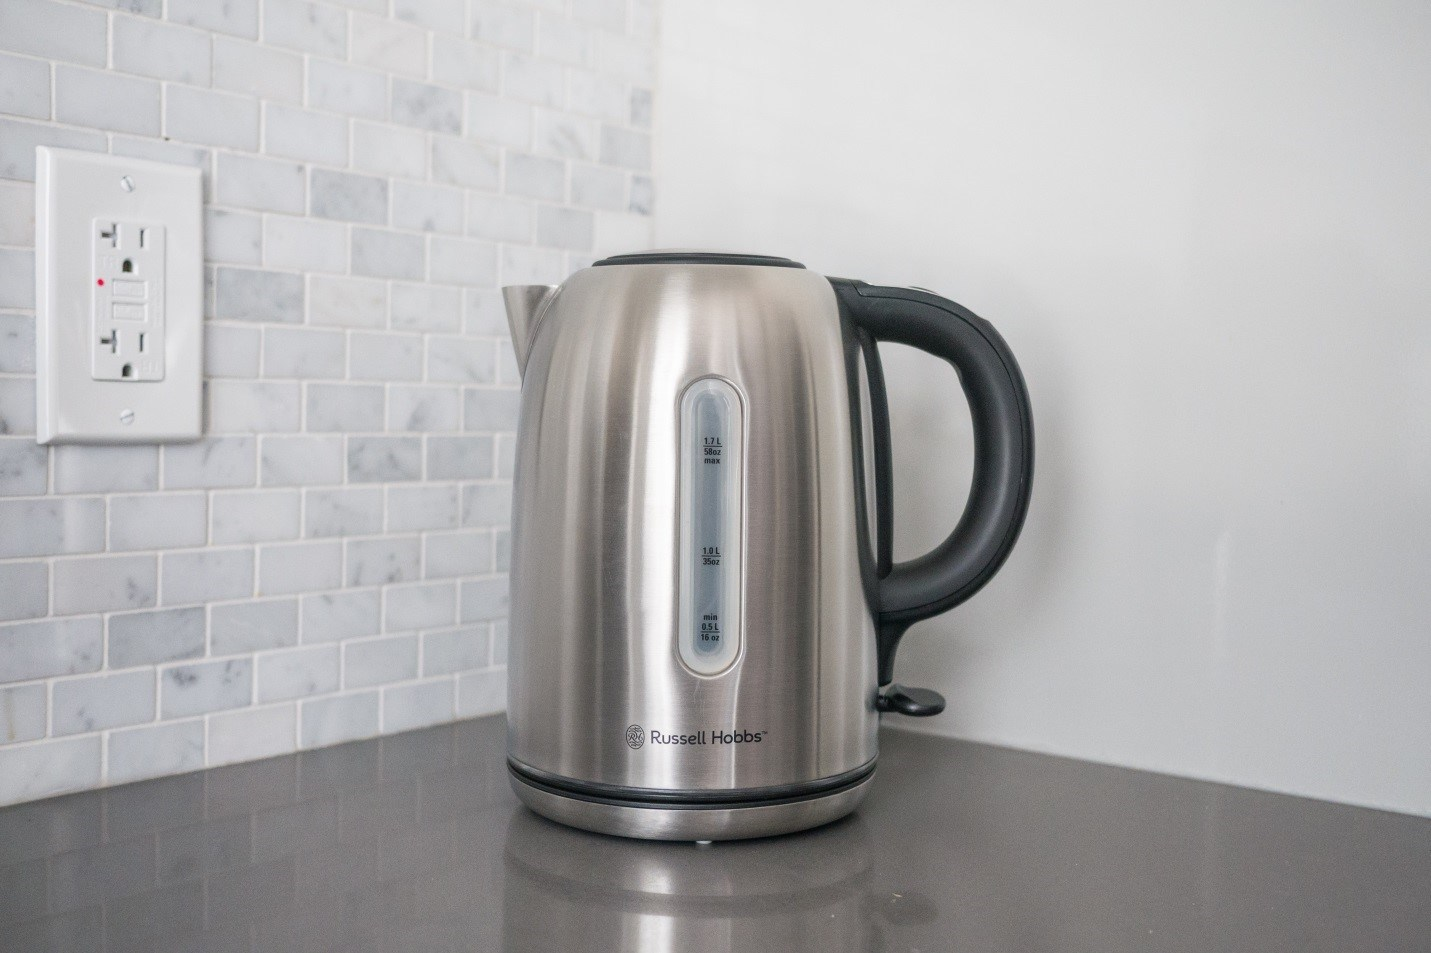 dorm room cooking kettle